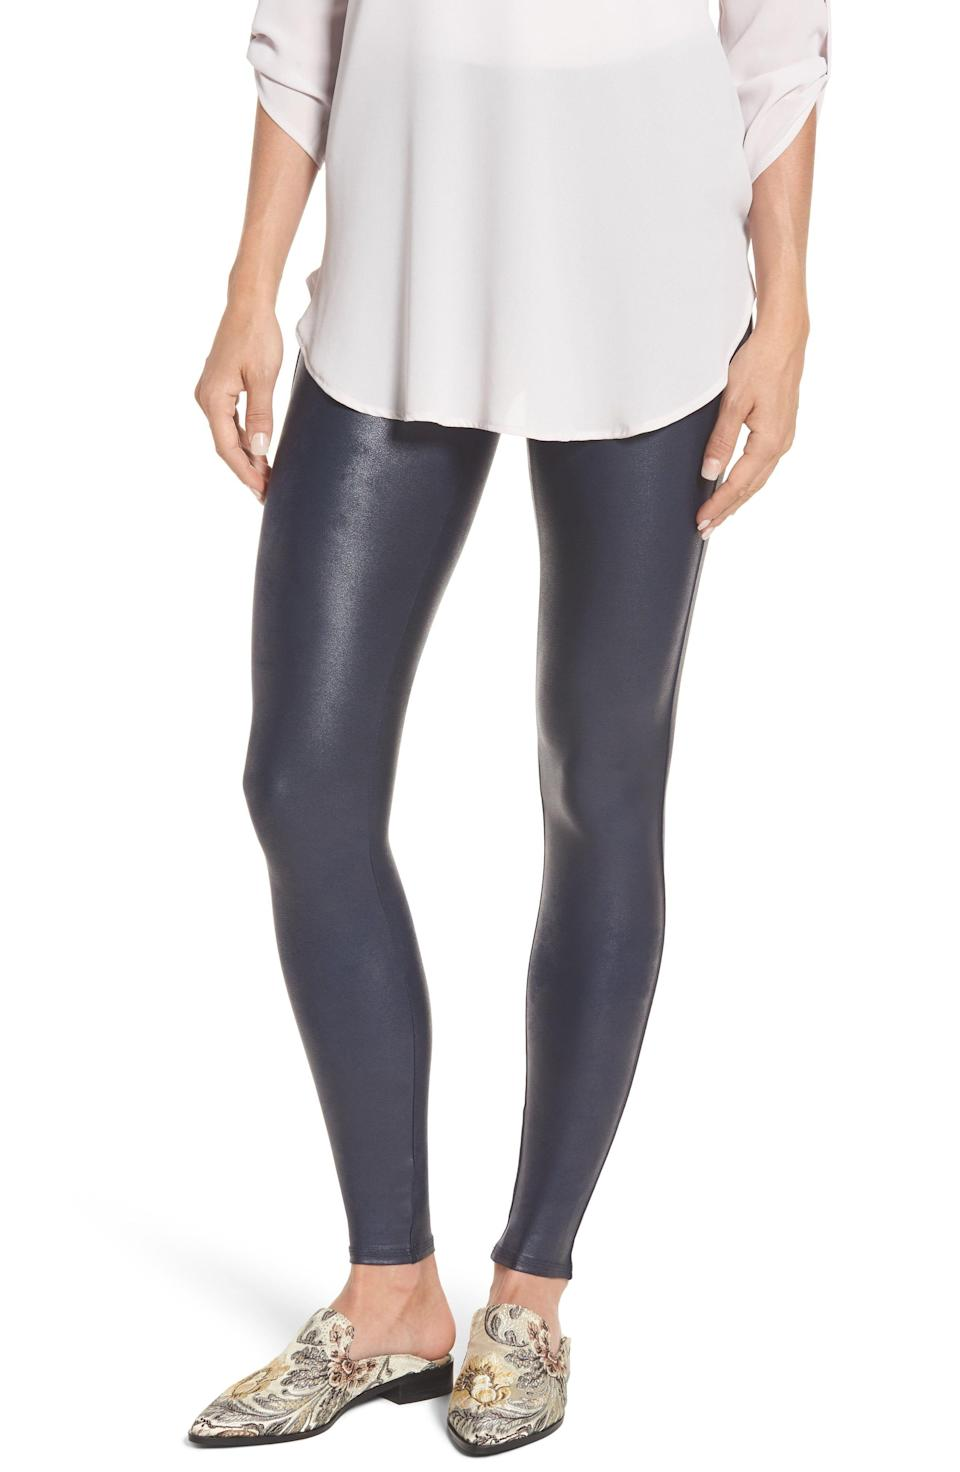 """<p><strong>SPANX</strong></p><p>nordstrom.com</p><p><strong>$98.00</strong></p><p><a href=""""https://go.redirectingat.com?id=74968X1596630&url=https%3A%2F%2Fwww.nordstrom.com%2Fs%2Fspanx-faux-leather-leggings-regular-petite-plus-size%2F3828364&sref=https%3A%2F%2Fwww.goodhousekeeping.com%2Fclothing%2Fg27206929%2Fbest-black-leggings%2F"""" rel=""""nofollow noopener"""" target=""""_blank"""" data-ylk=""""slk:Shop Now"""" class=""""link rapid-noclick-resp"""">Shop Now</a></p><p>For black leggings you can wear to work or on a night out, this faux leather style is super chic and a bestseller. And <strong>since it's coming from Spanx, it has the built-in <a href=""""http://www.goodhousekeeping.com/clothing/best-shapewear/g2815/best-shapewear-for-women/"""" rel=""""nofollow noopener"""" target=""""_blank"""" data-ylk=""""slk:shapewear"""" class=""""link rapid-noclick-resp"""">shapewear</a> you know and love</strong>, plus the nylon/spandex fabric has a sheen appearance that reviewers say makes their legs look long and lean.</p><p>If the leather look isn't for you, Spanx also has a black <a href=""""https://go.redirectingat.com?id=74968X1596630&url=https%3A%2F%2Fwww.spanx.com%2Fponte-ankle-leggings&sref=https%3A%2F%2Fwww.goodhousekeeping.com%2Fclothing%2Fg27206929%2Fbest-black-leggings%2F"""" rel=""""nofollow noopener"""" target=""""_blank"""" data-ylk=""""slk:ponte version"""" class=""""link rapid-noclick-resp"""">ponte version</a> of these leggings made of a soft, stretchy, and thick fabric. Both the faux leather and ponte styles have slimming waistbands and are machine washable for easy care.</p>"""